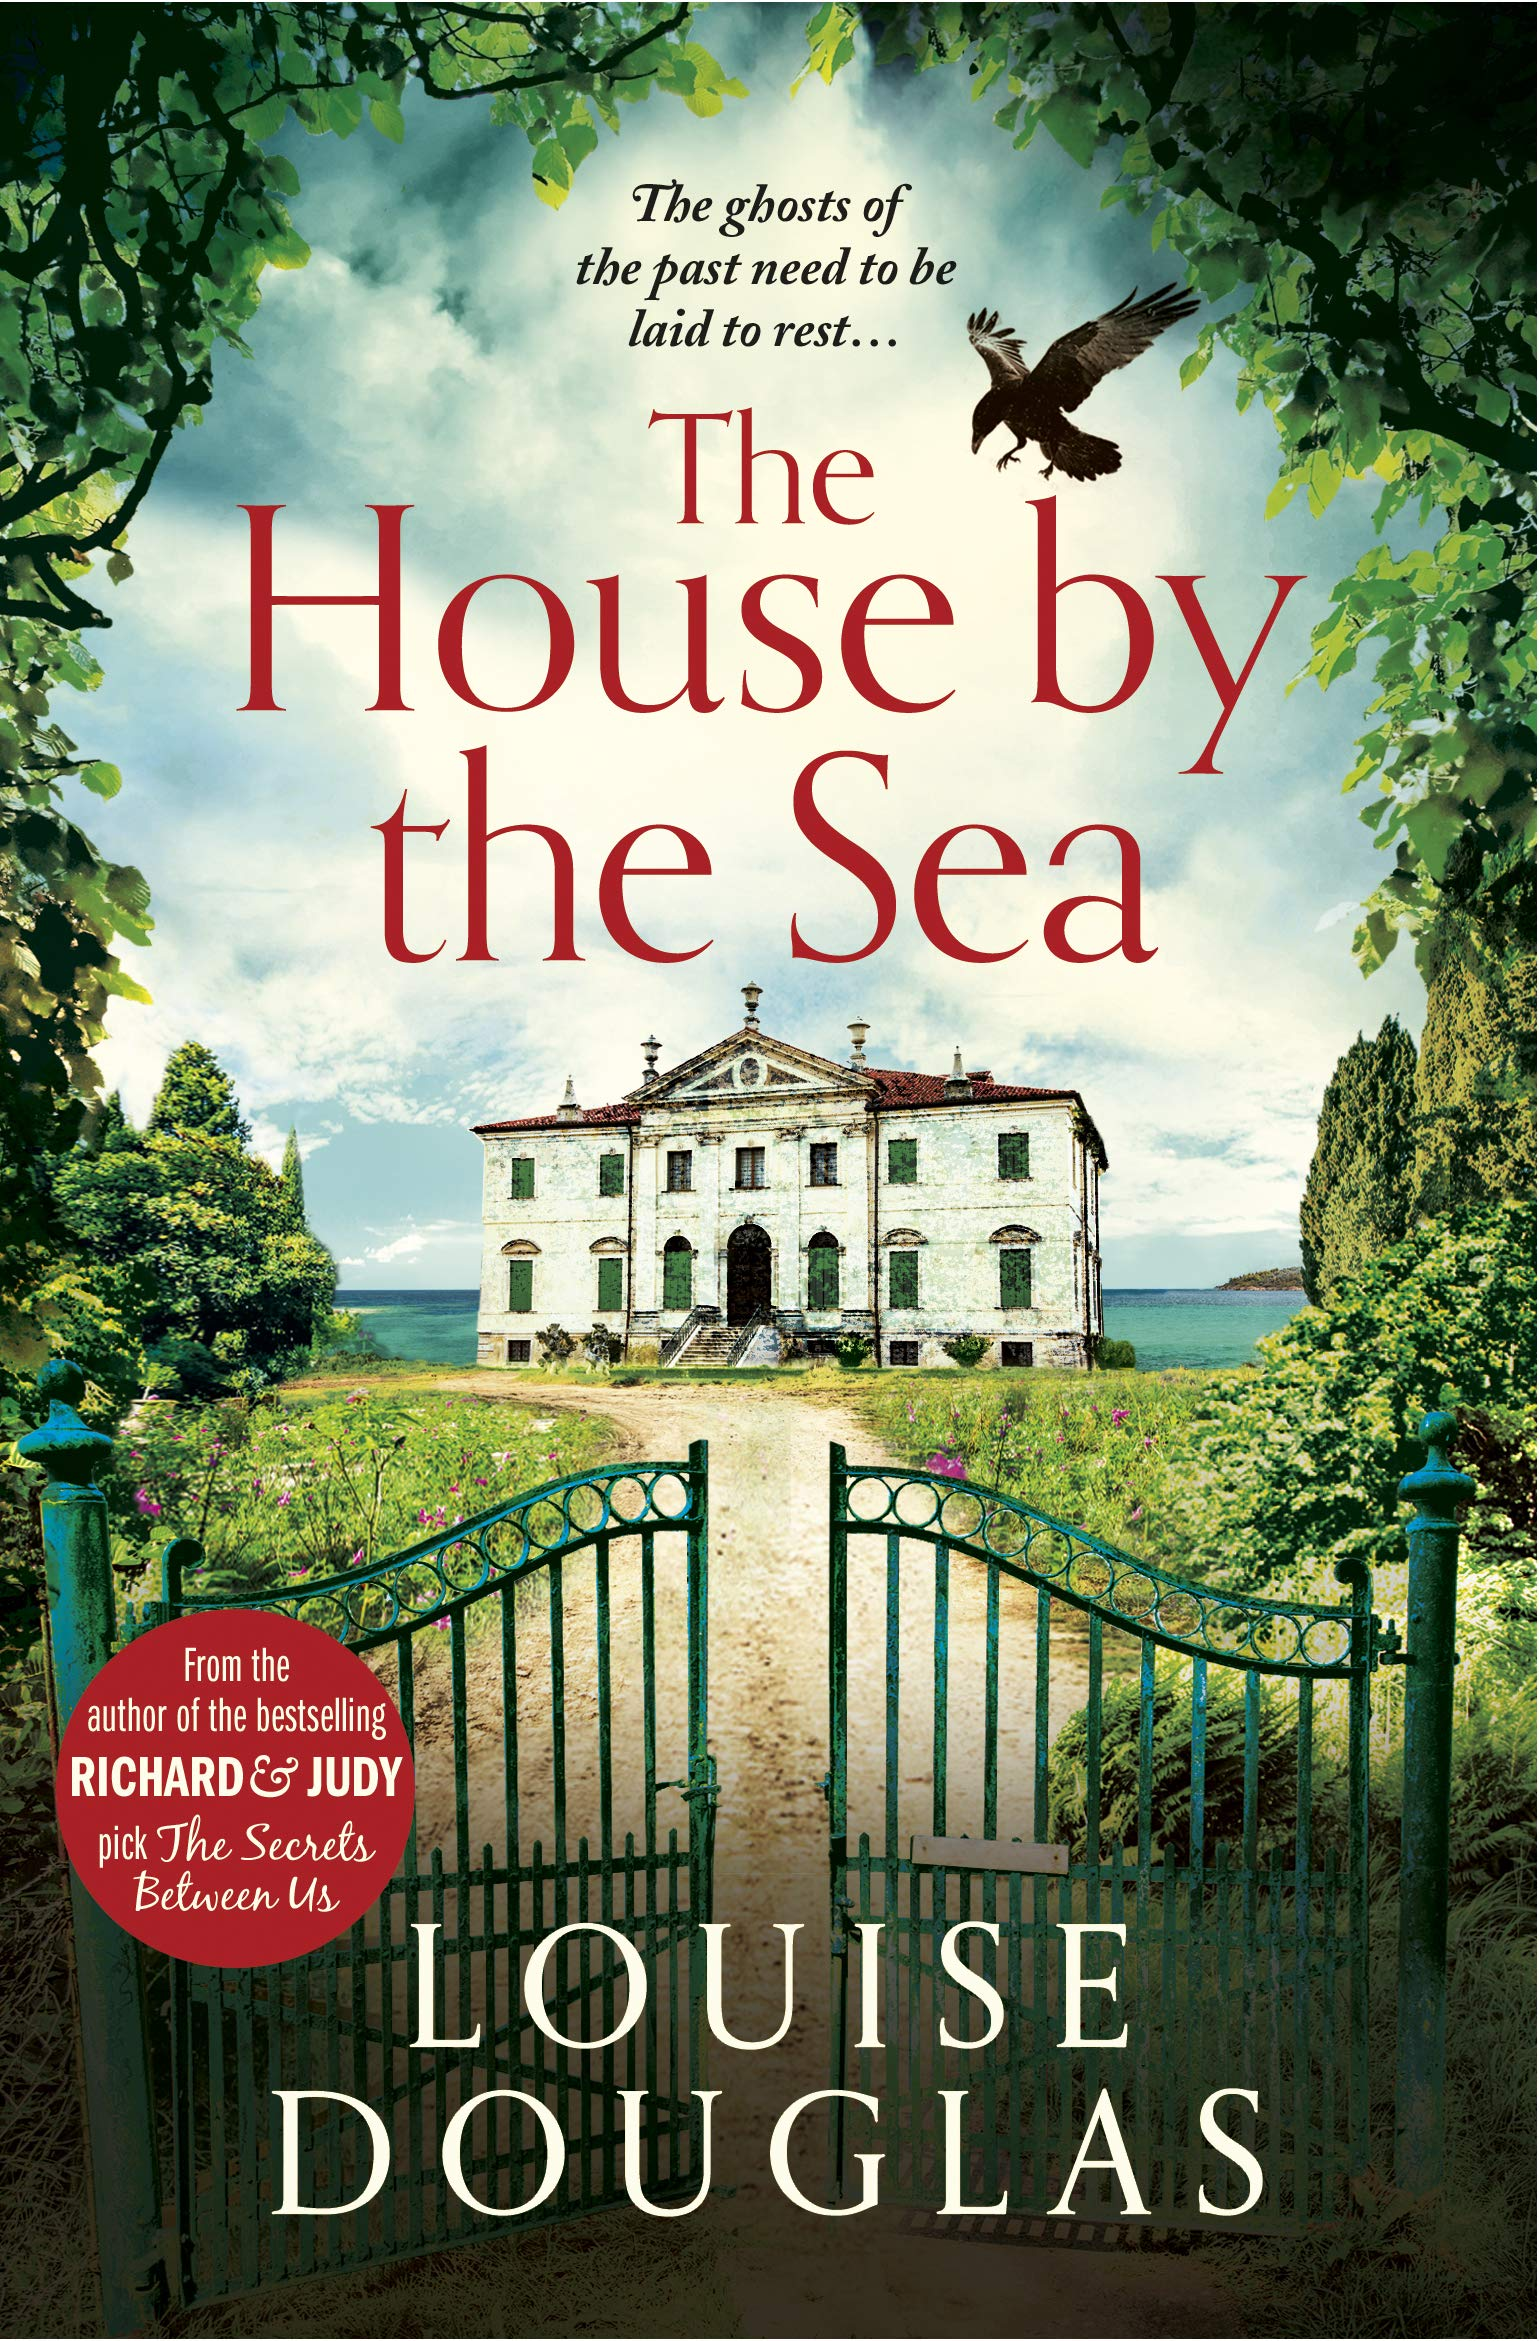 Cover image of The House by the Sea by Louise Douglas